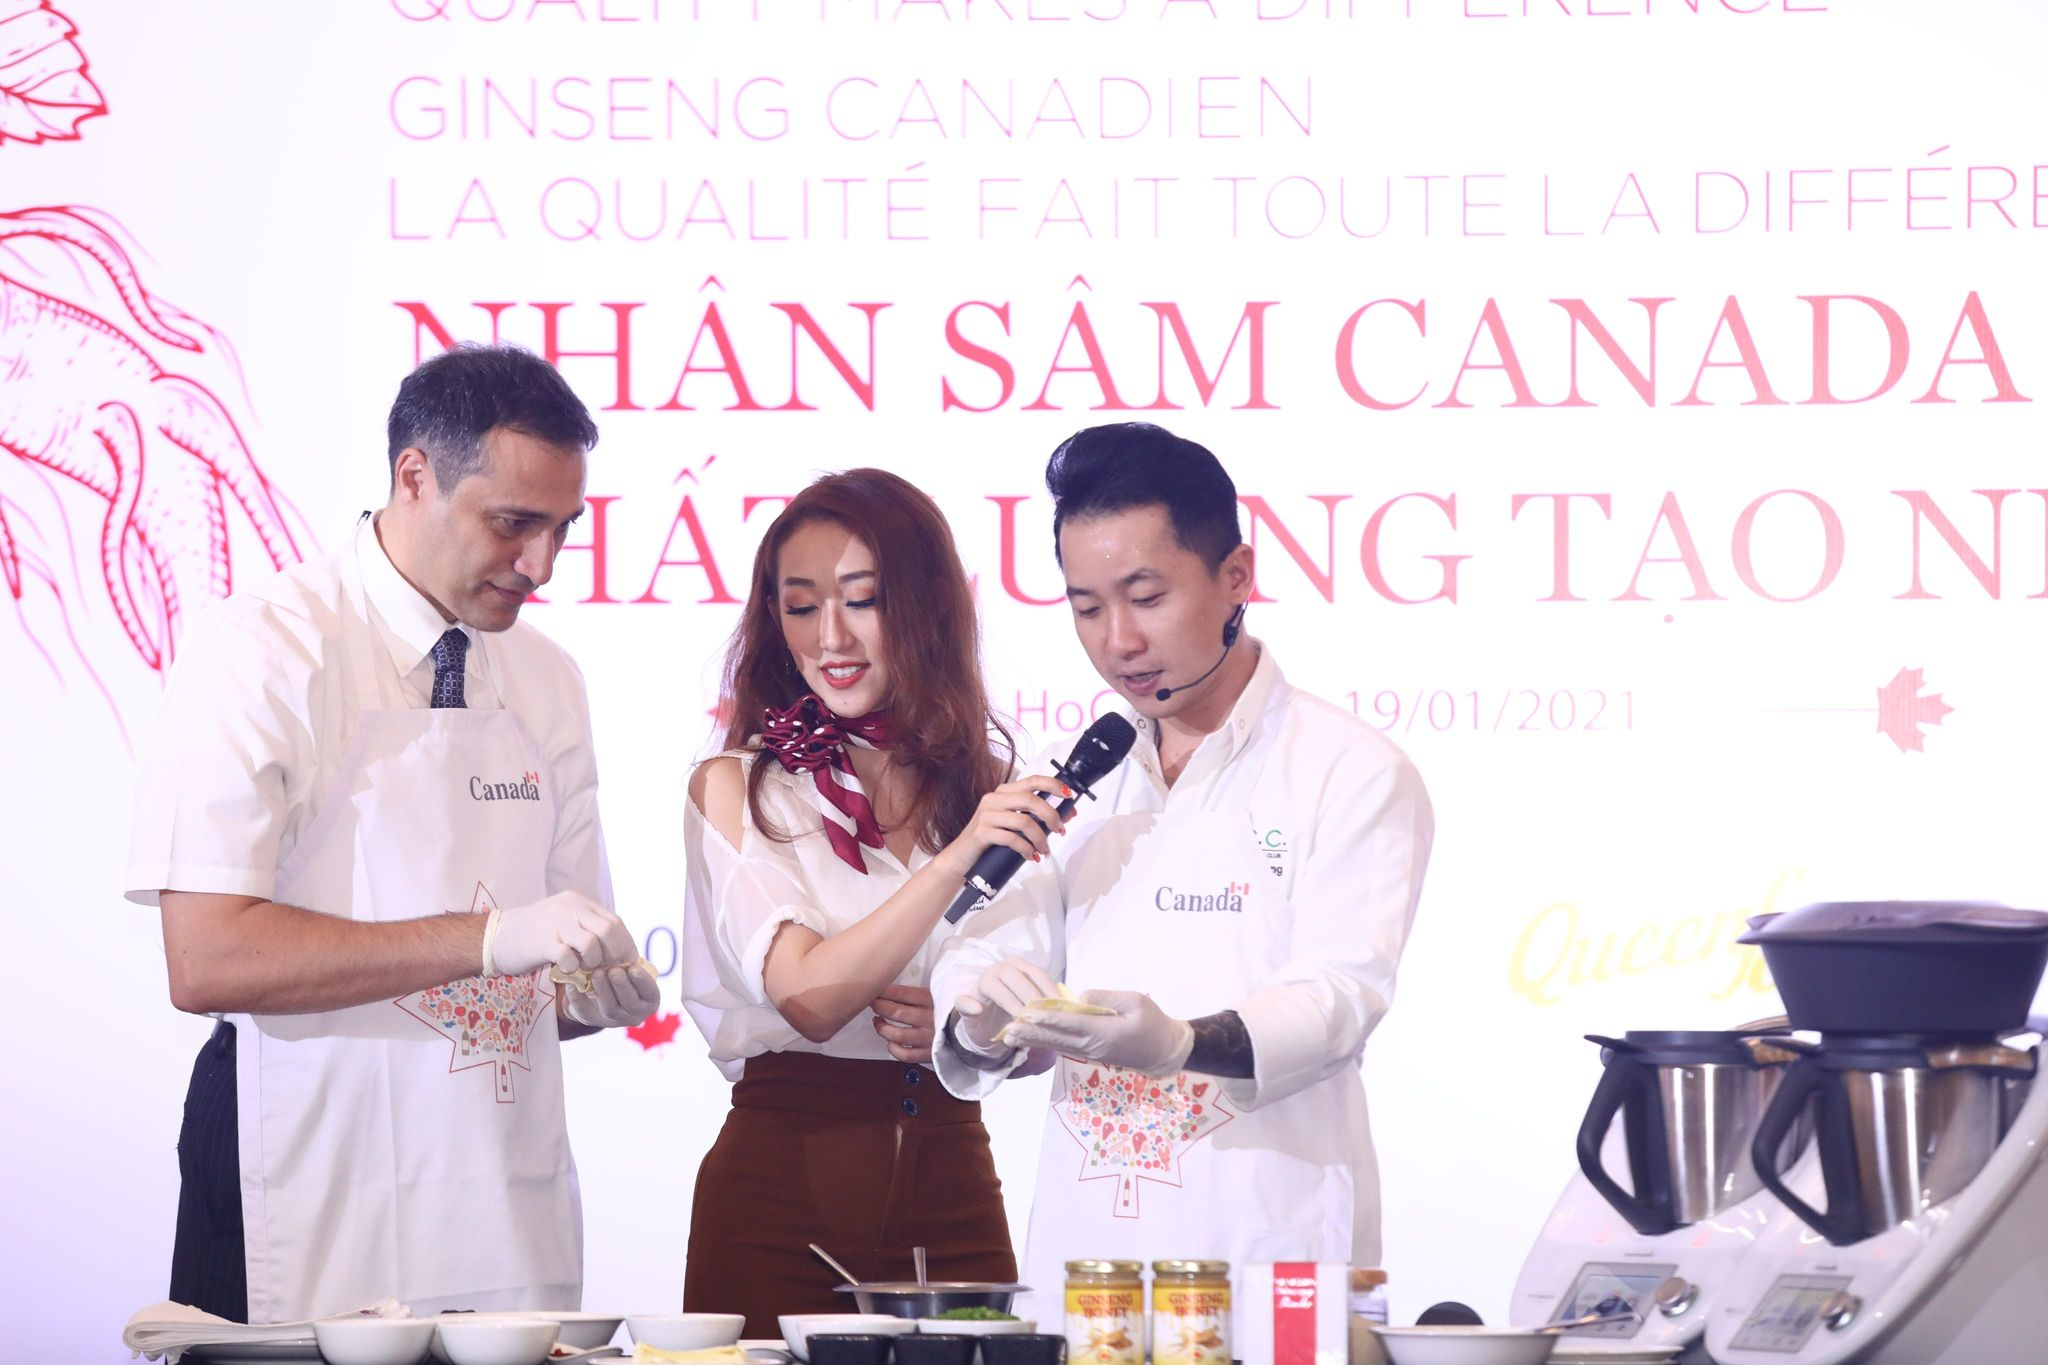 Chef Cam Thien Long (right) instructs Consul General of Canada in Ho Chi Minh City Behzad Babakhani to make foods using Canadian ginseng and local ingredients at an event to promote Canadian ginseng in Ho Chi Minh City in January. Photo by courtesy of Consulate General of Canada in Ho Chi Minh City.